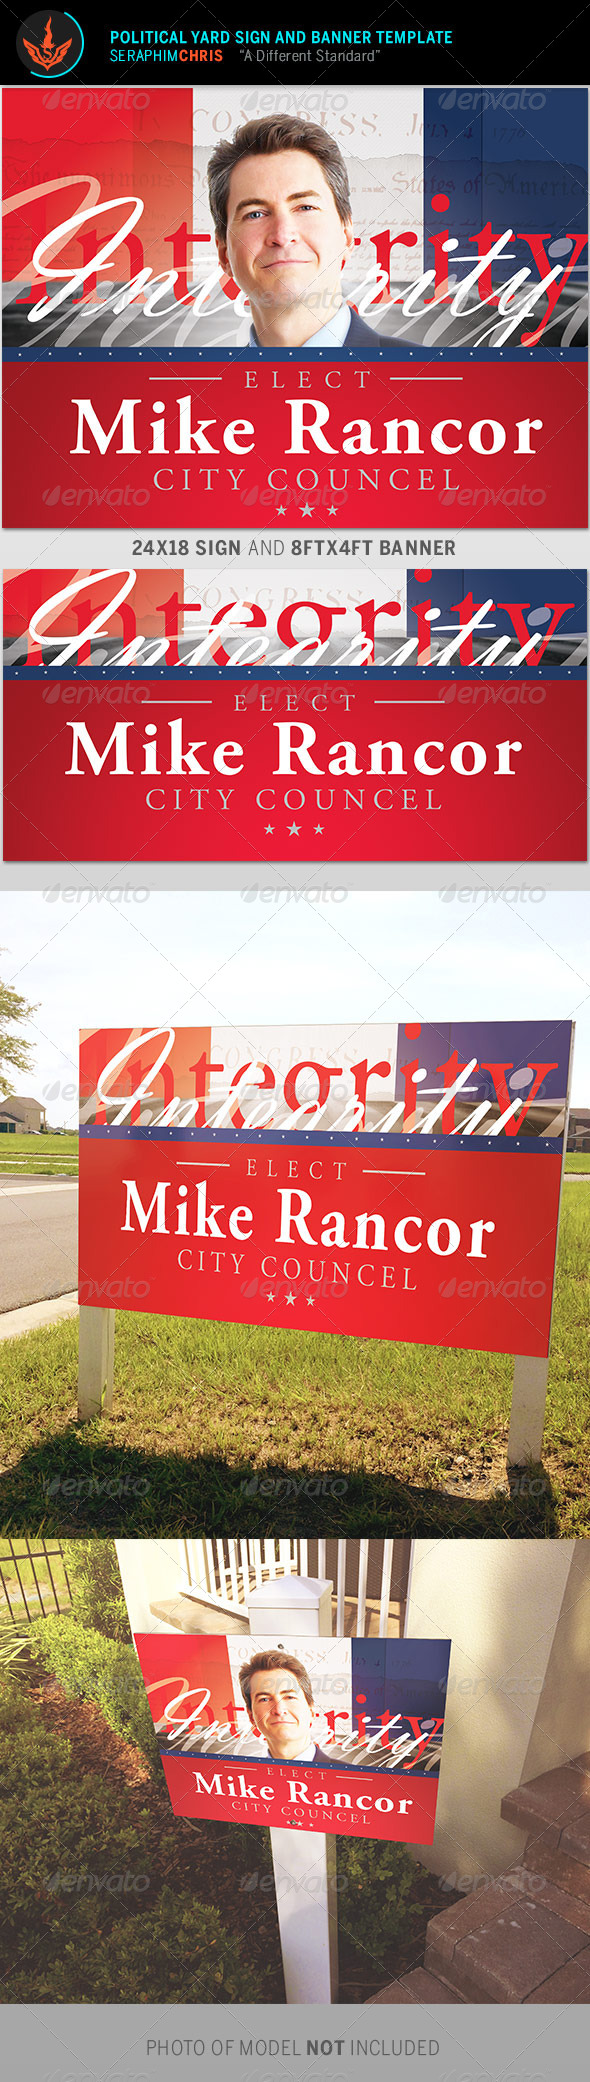 GraphicRiver Political Yard Sign and Banner Template 8737846